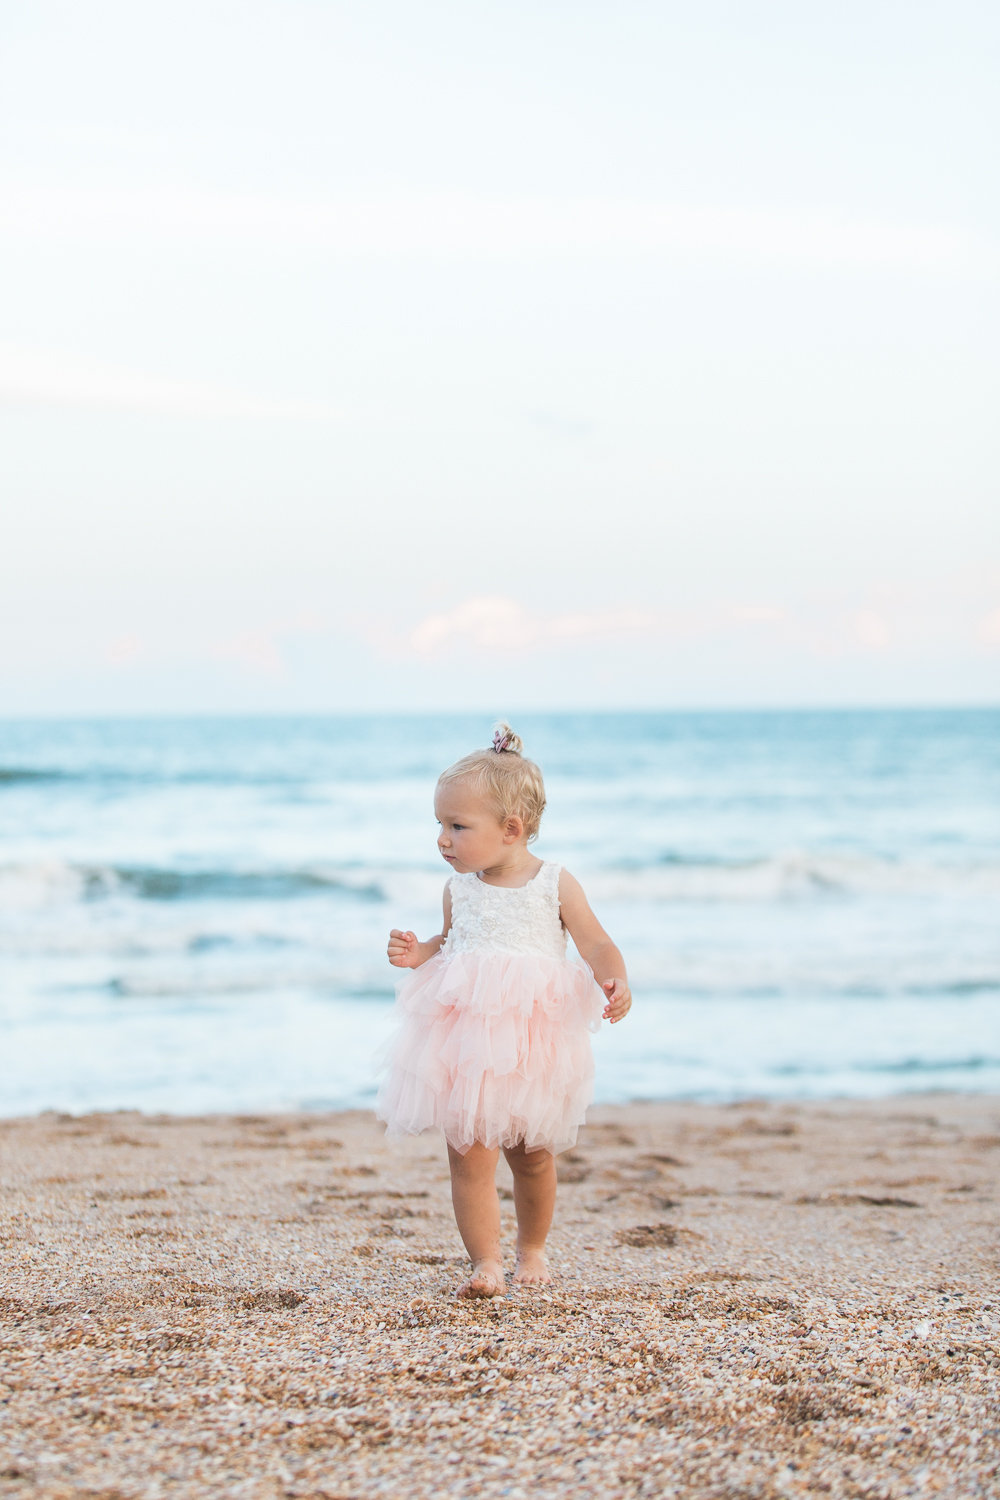 sunset pictures in ponte vedra beach with a toddler girl wearing lace tulle dress